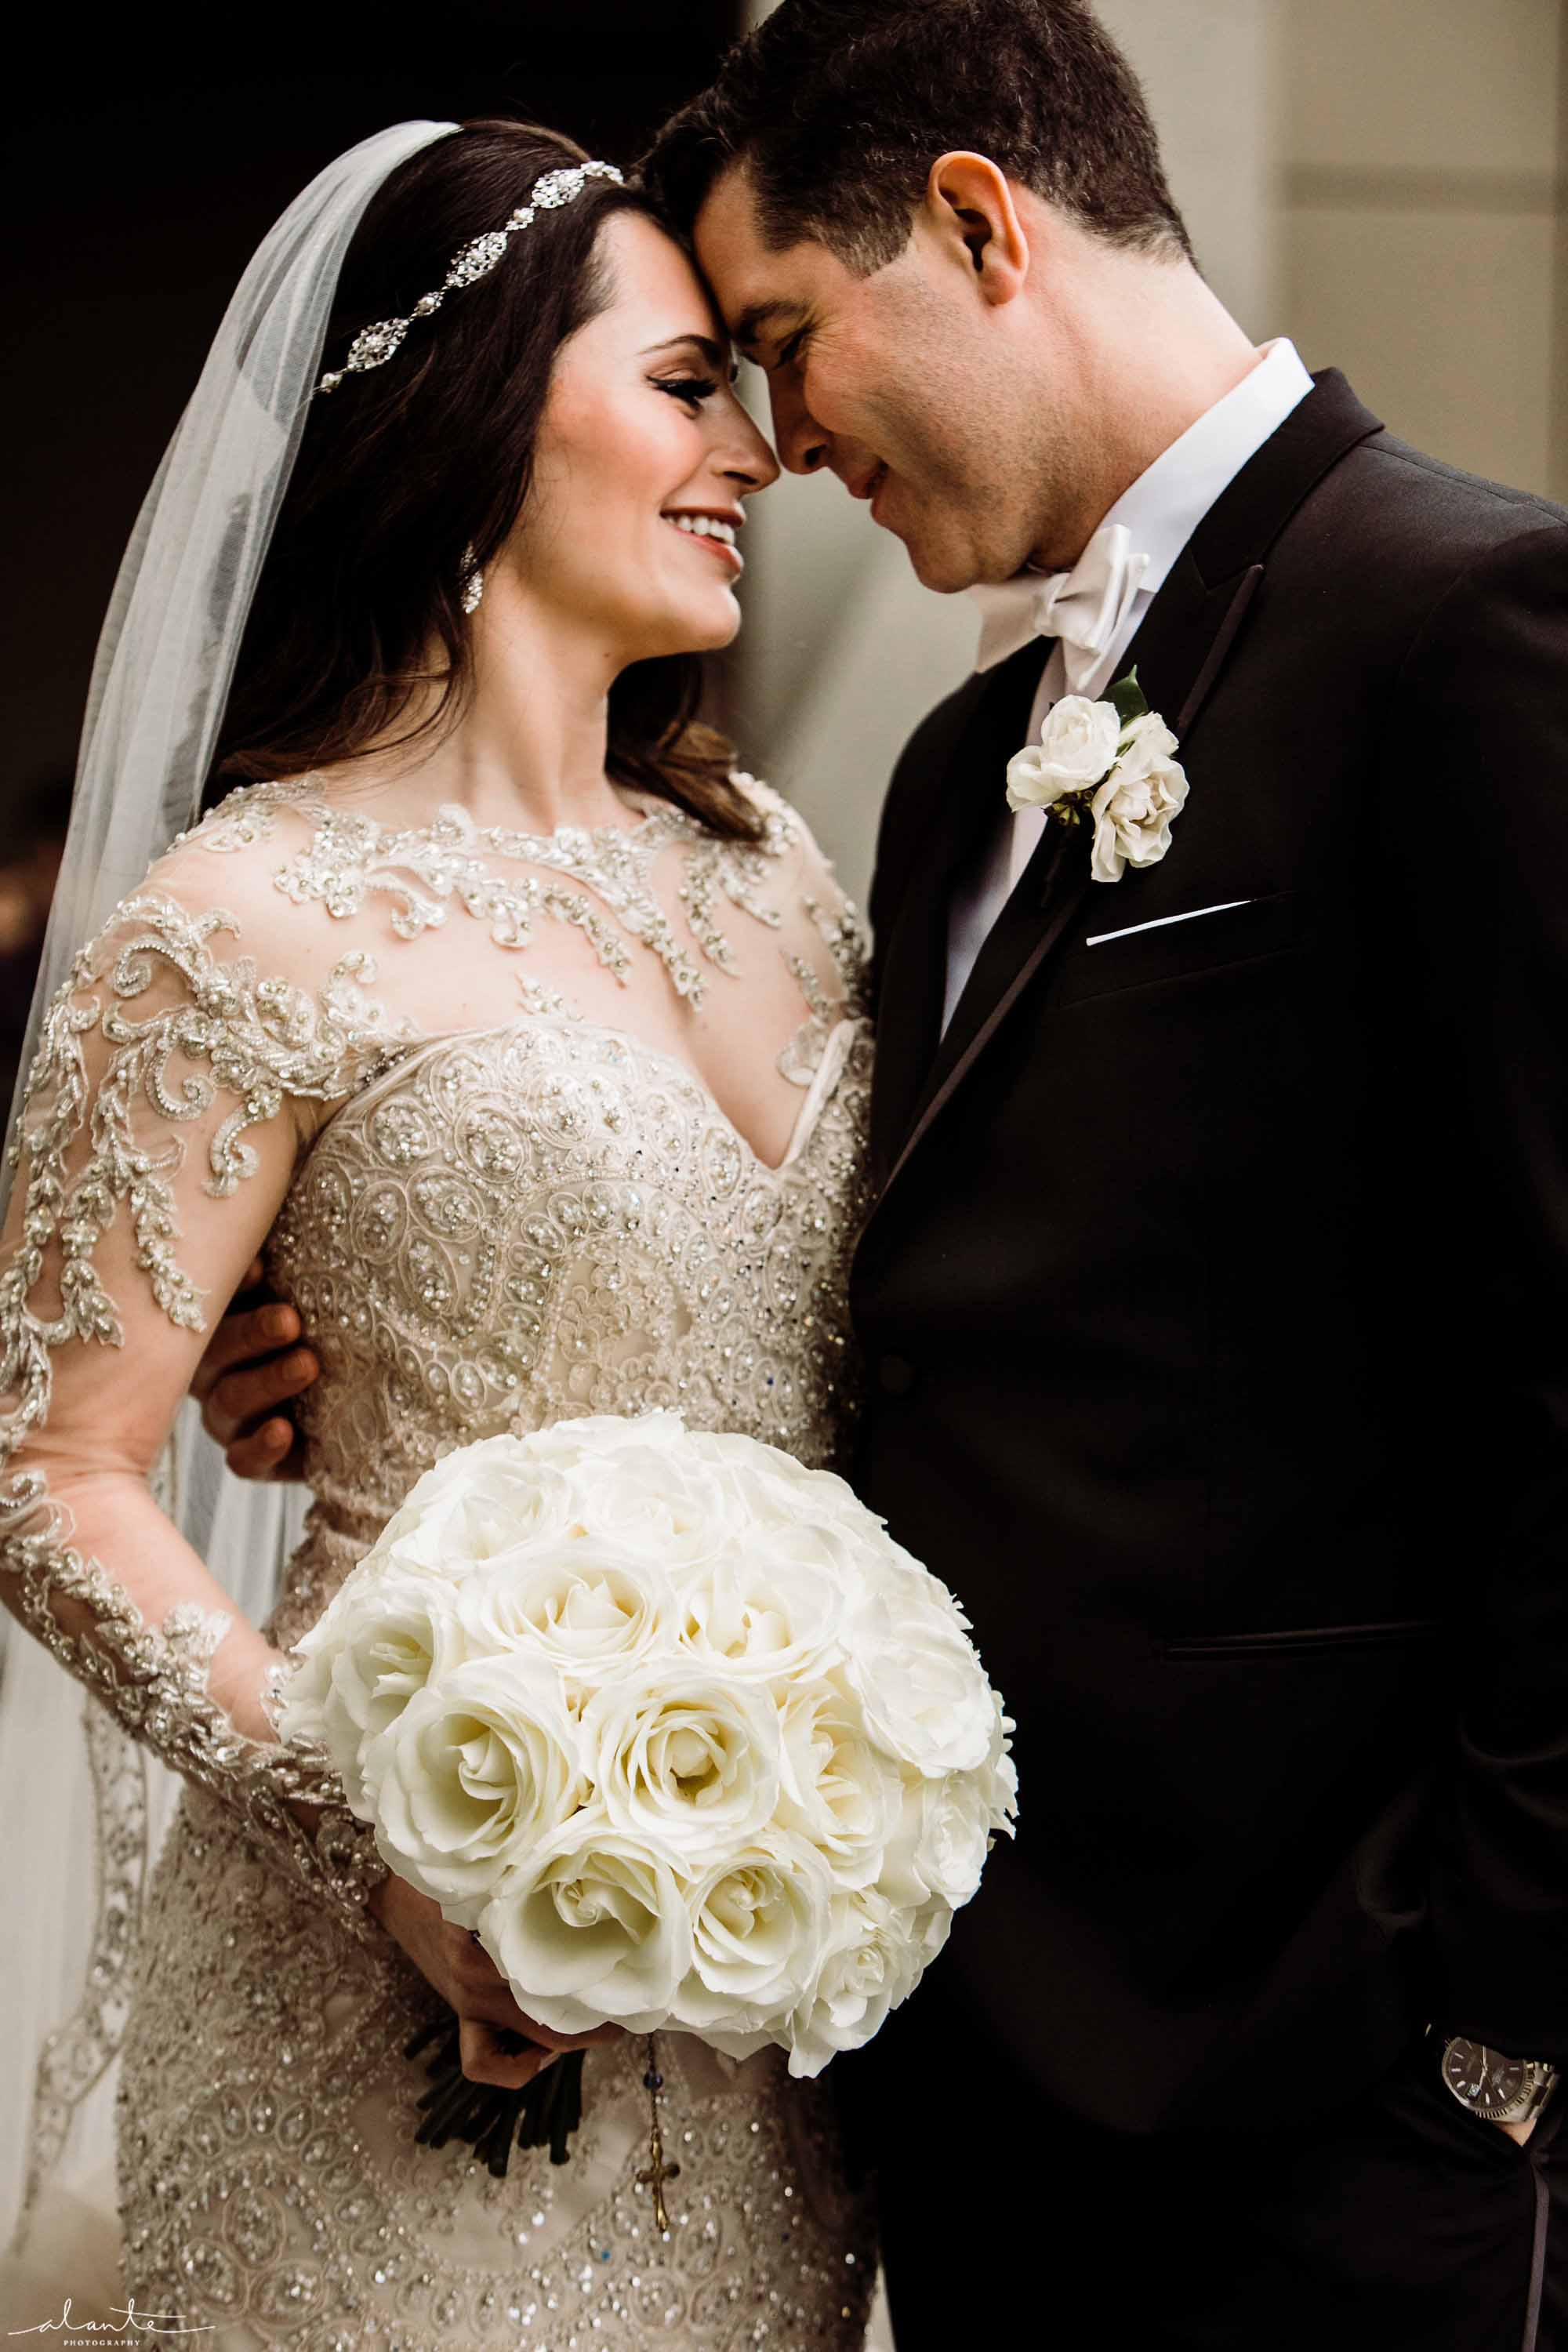 Bride and groom with bouquet of all white roses - Luxury Winter Wedding at the Four Seasons by Flora Nova Design Seattle